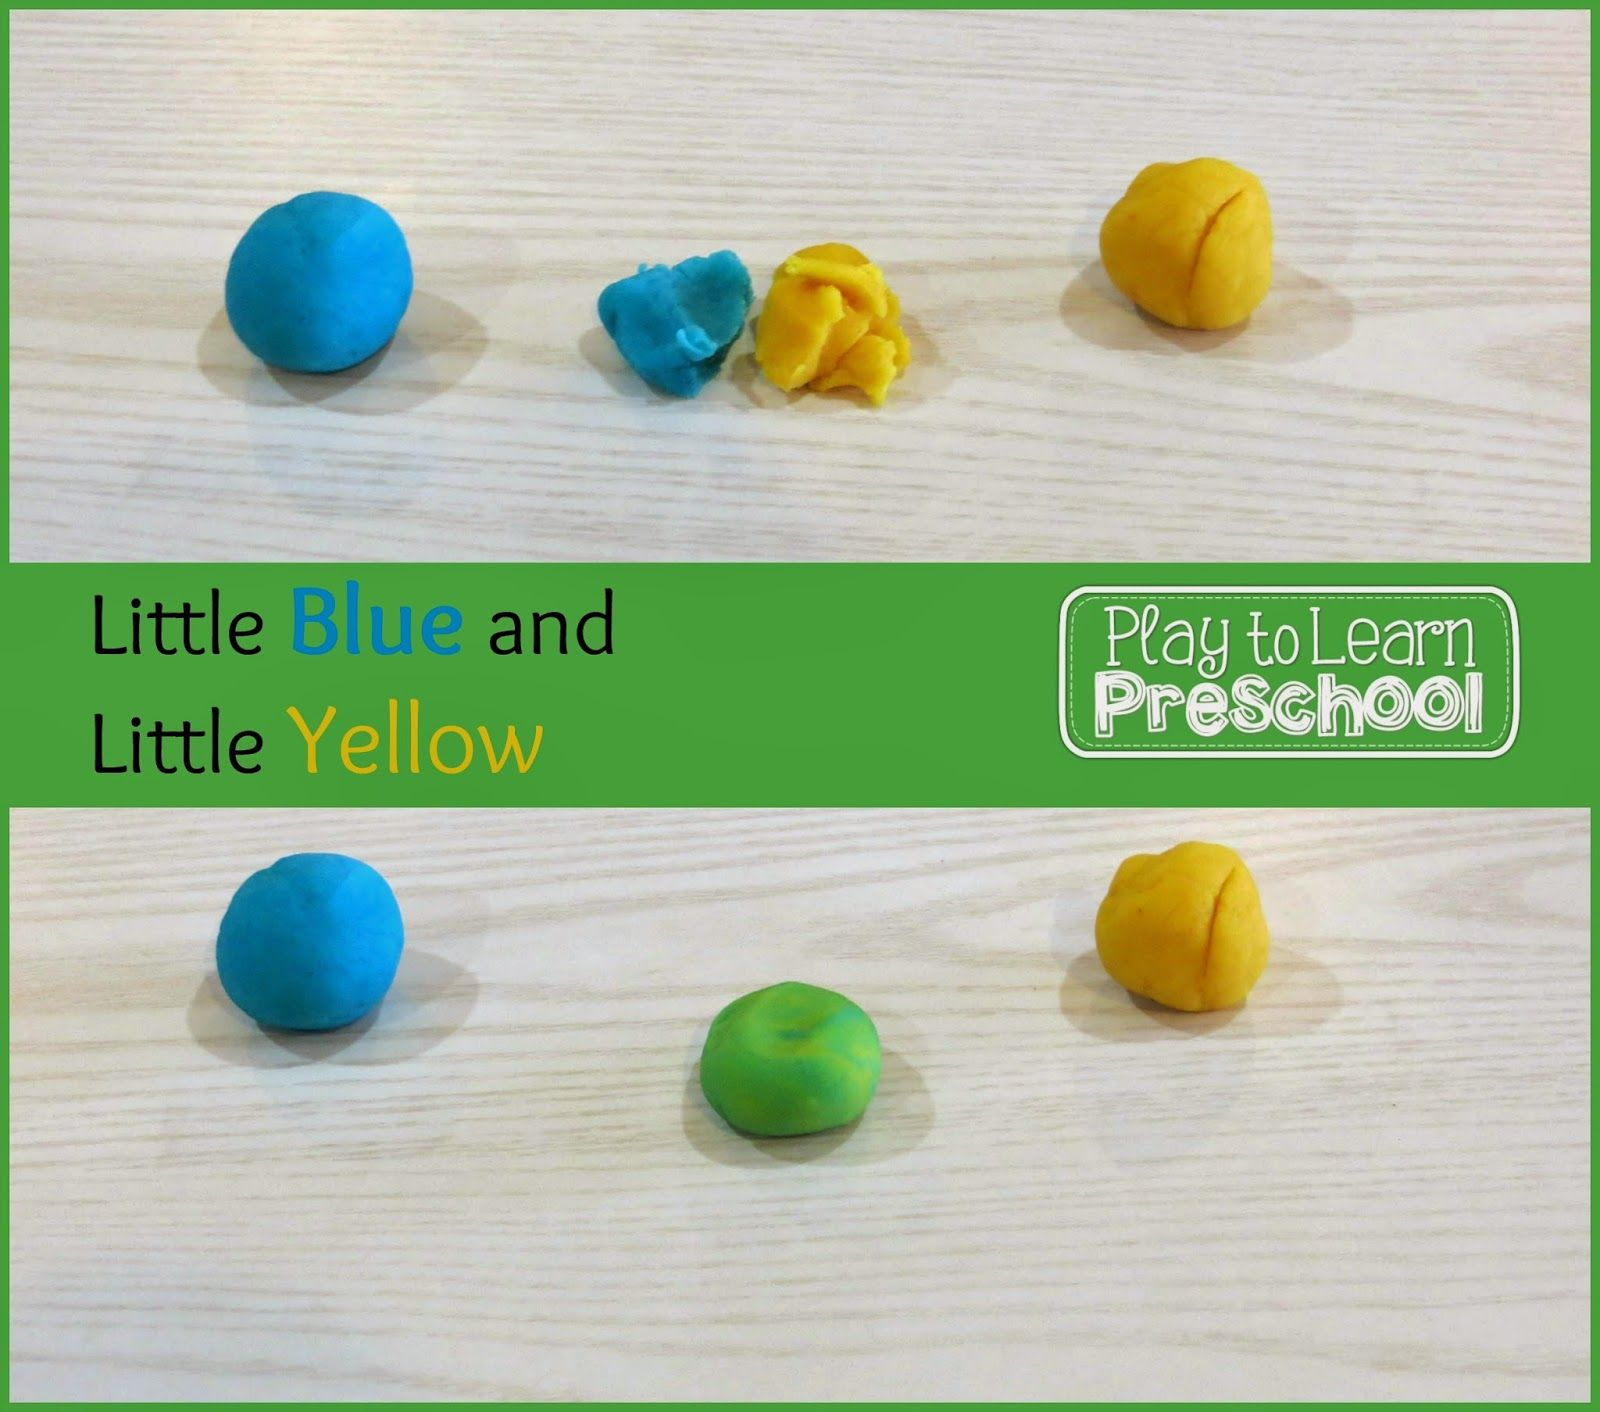 5 Favorite Color Books | Play dough, Leo lionni and Author studies